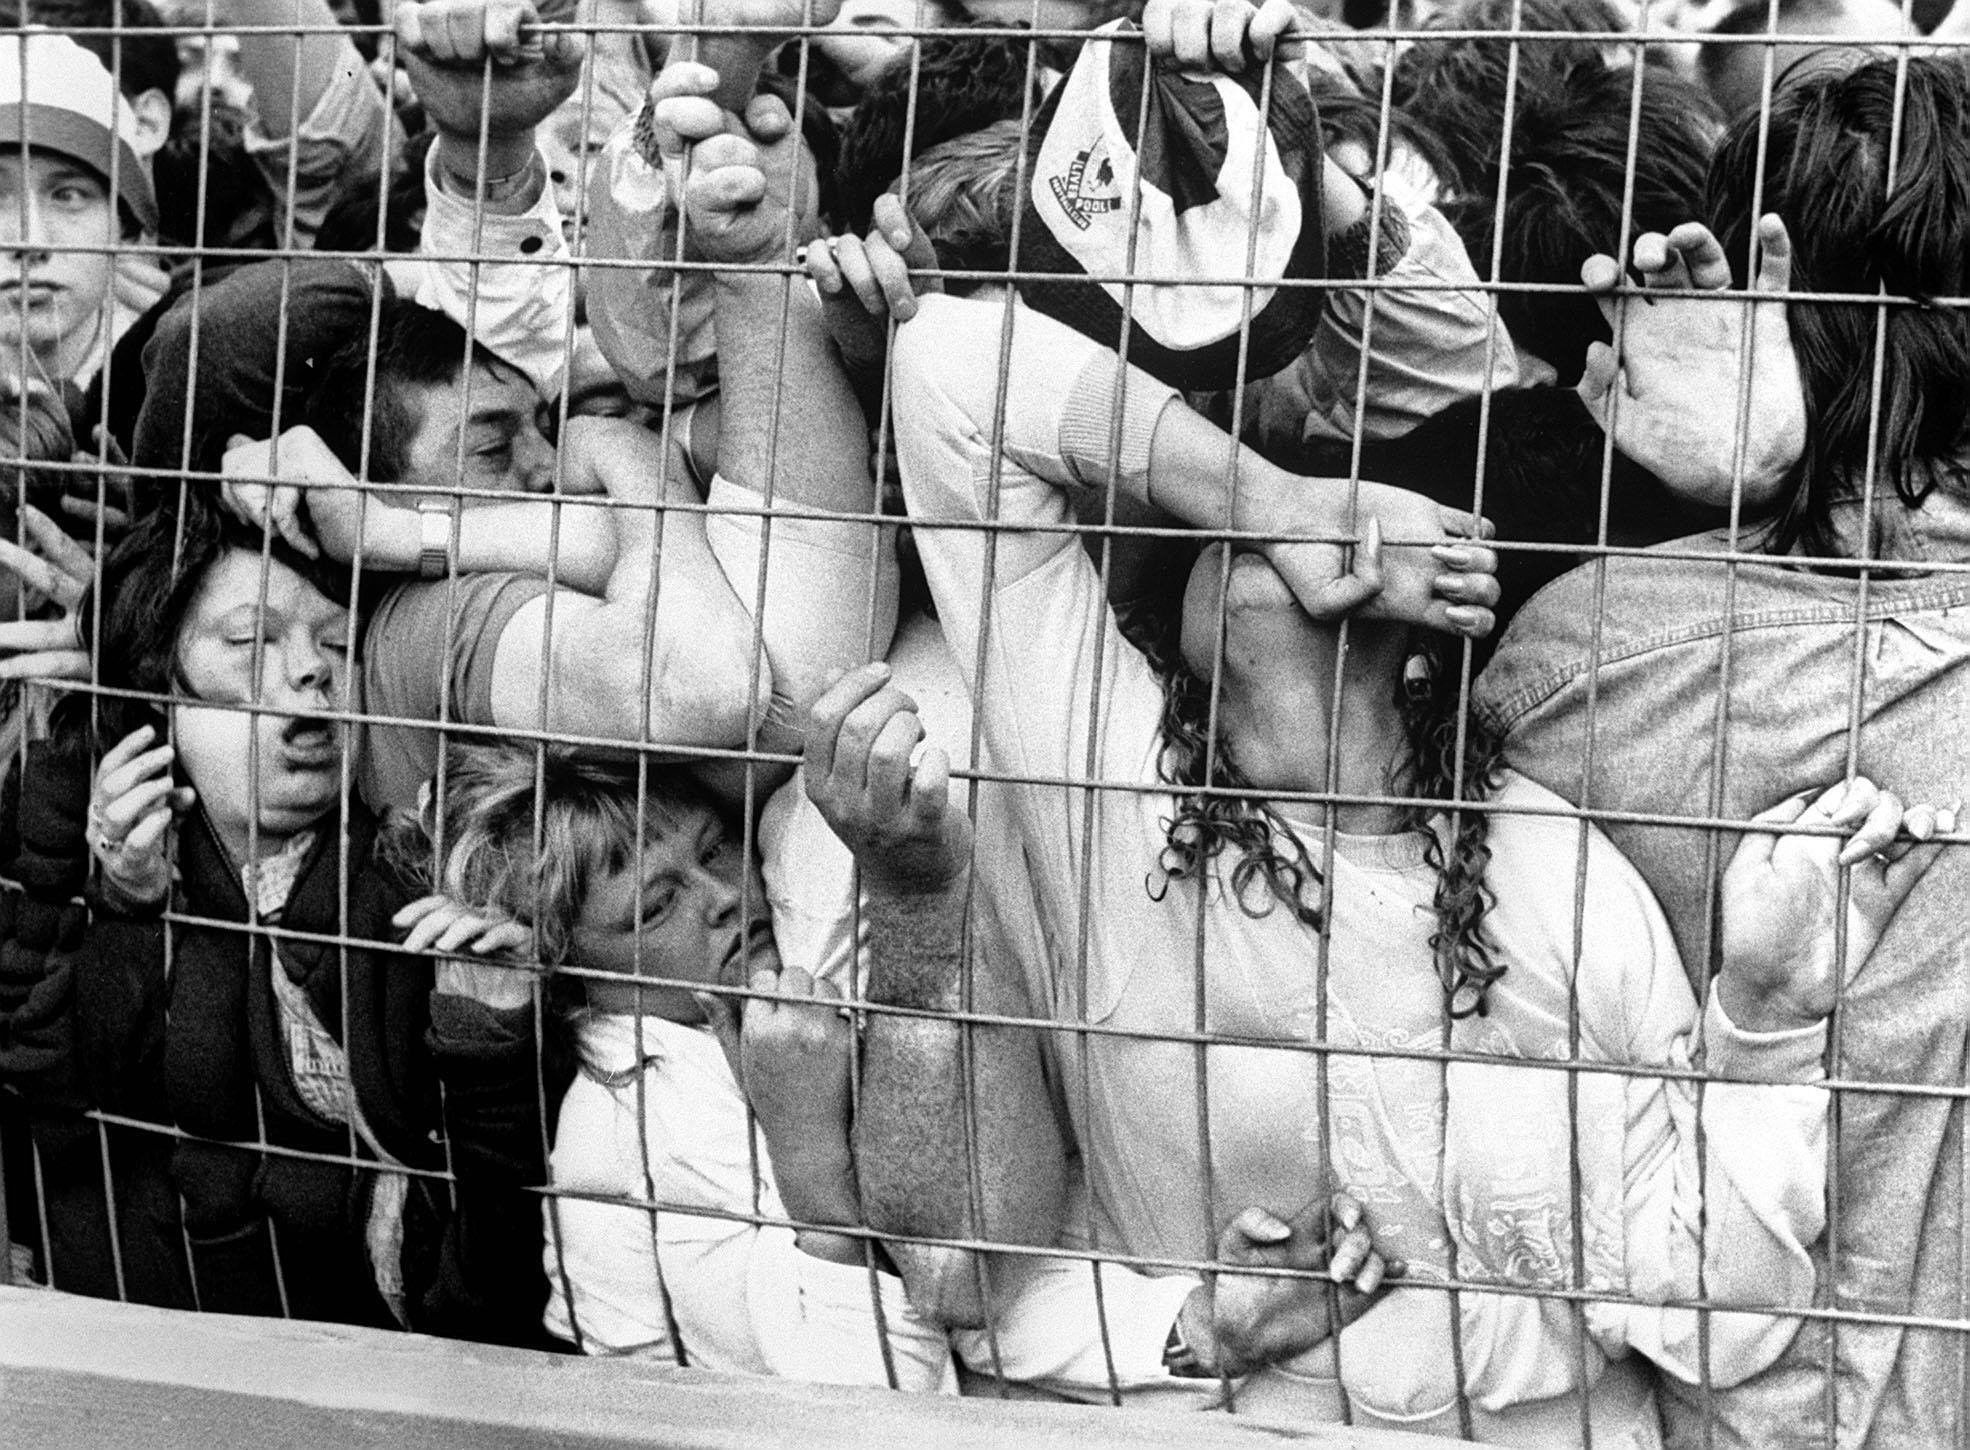 Fans Being Crushed Against The Fence In The Liverpool Enclosure At